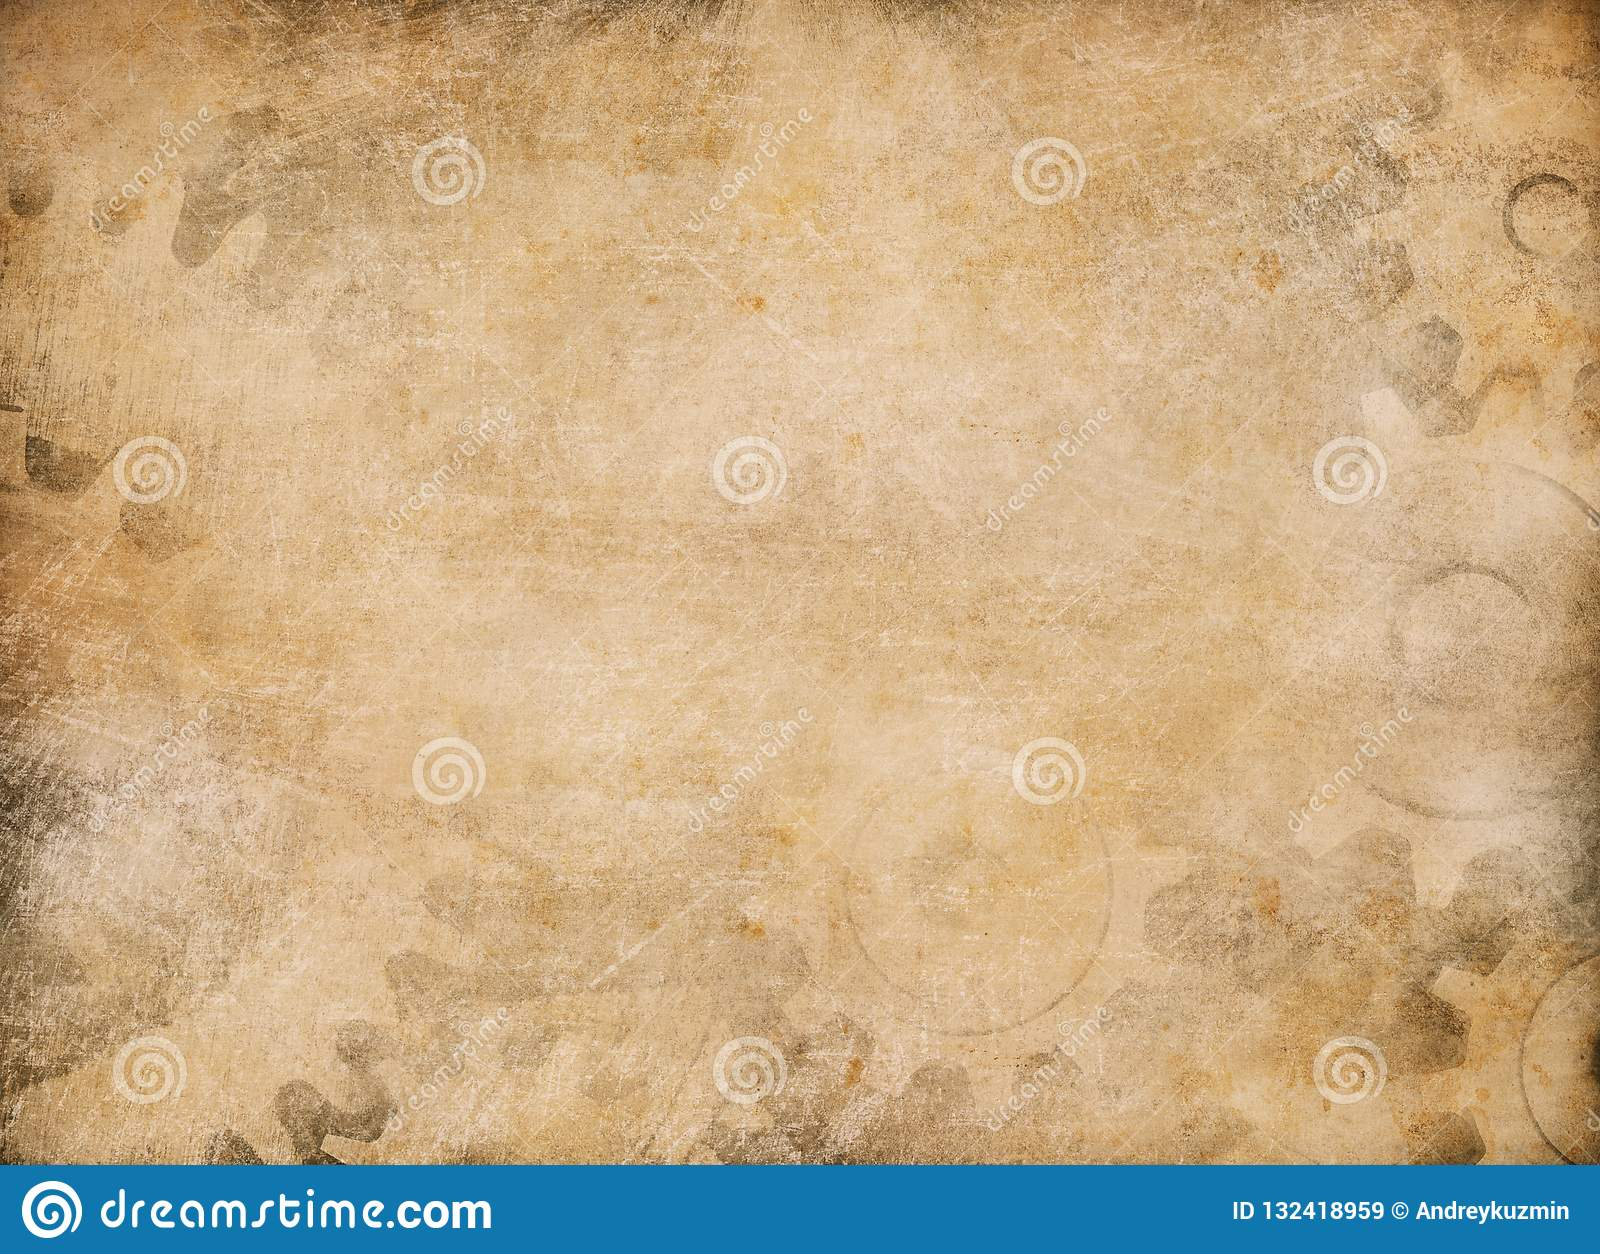 Gears and cogs vintage paper background